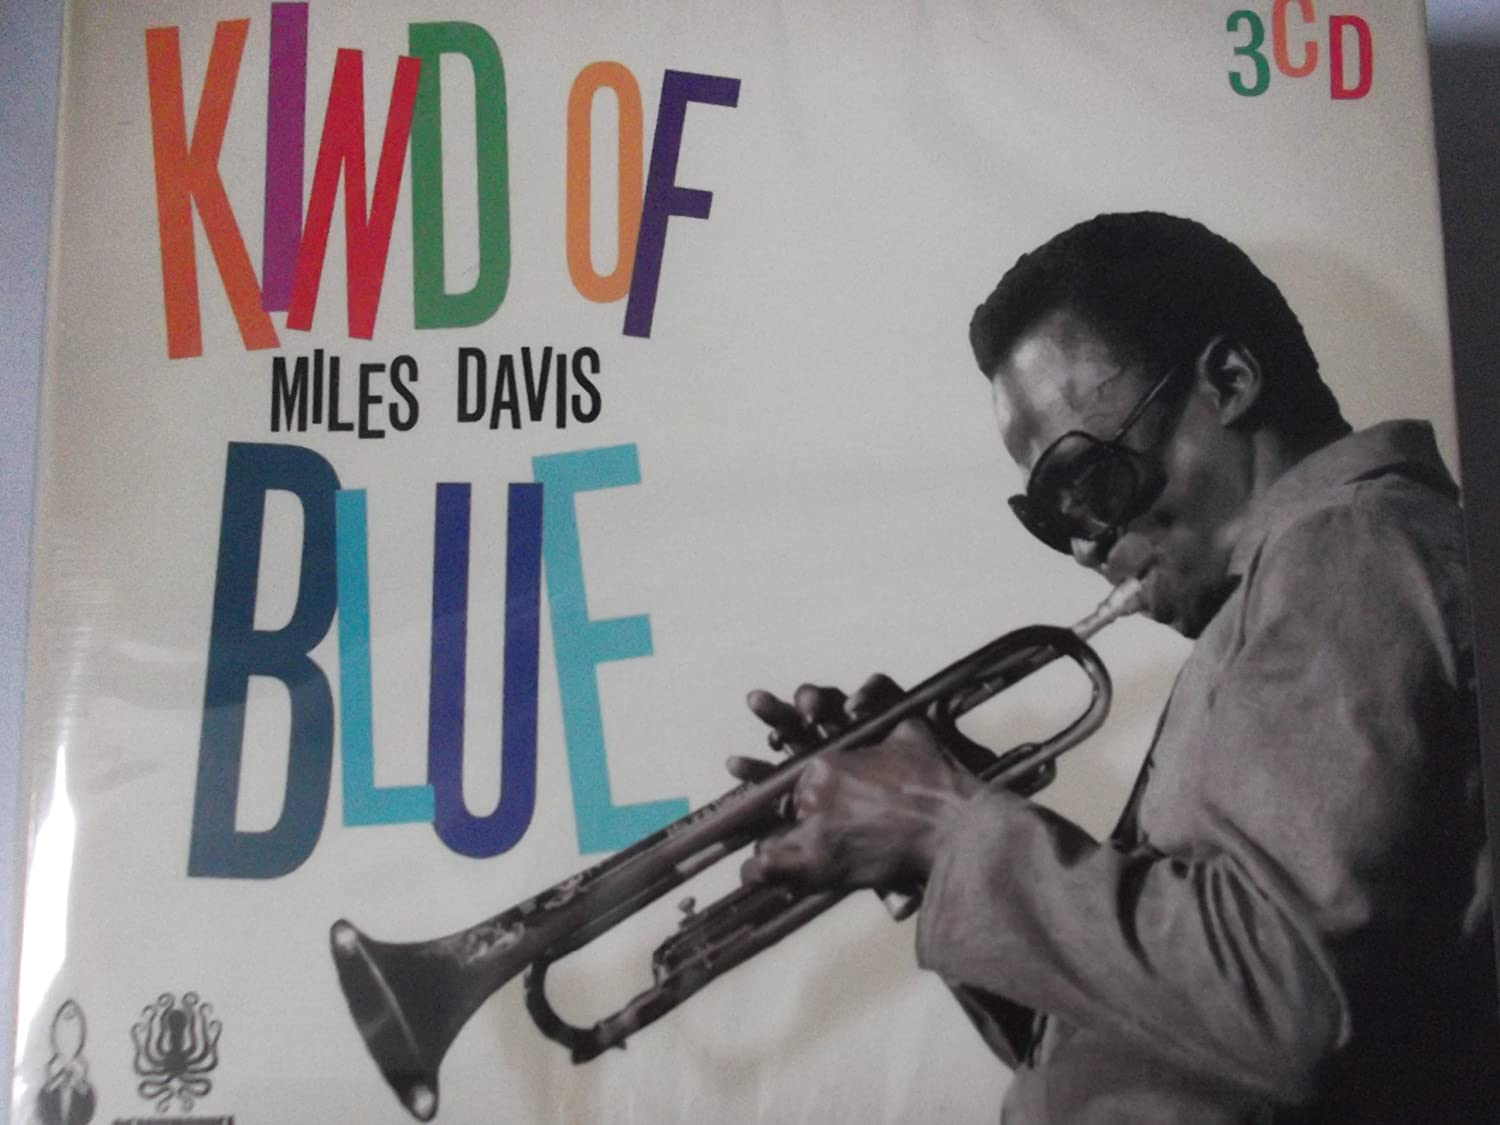 Kind of Blue                                                                                                                                                                                                                                                    <span class=